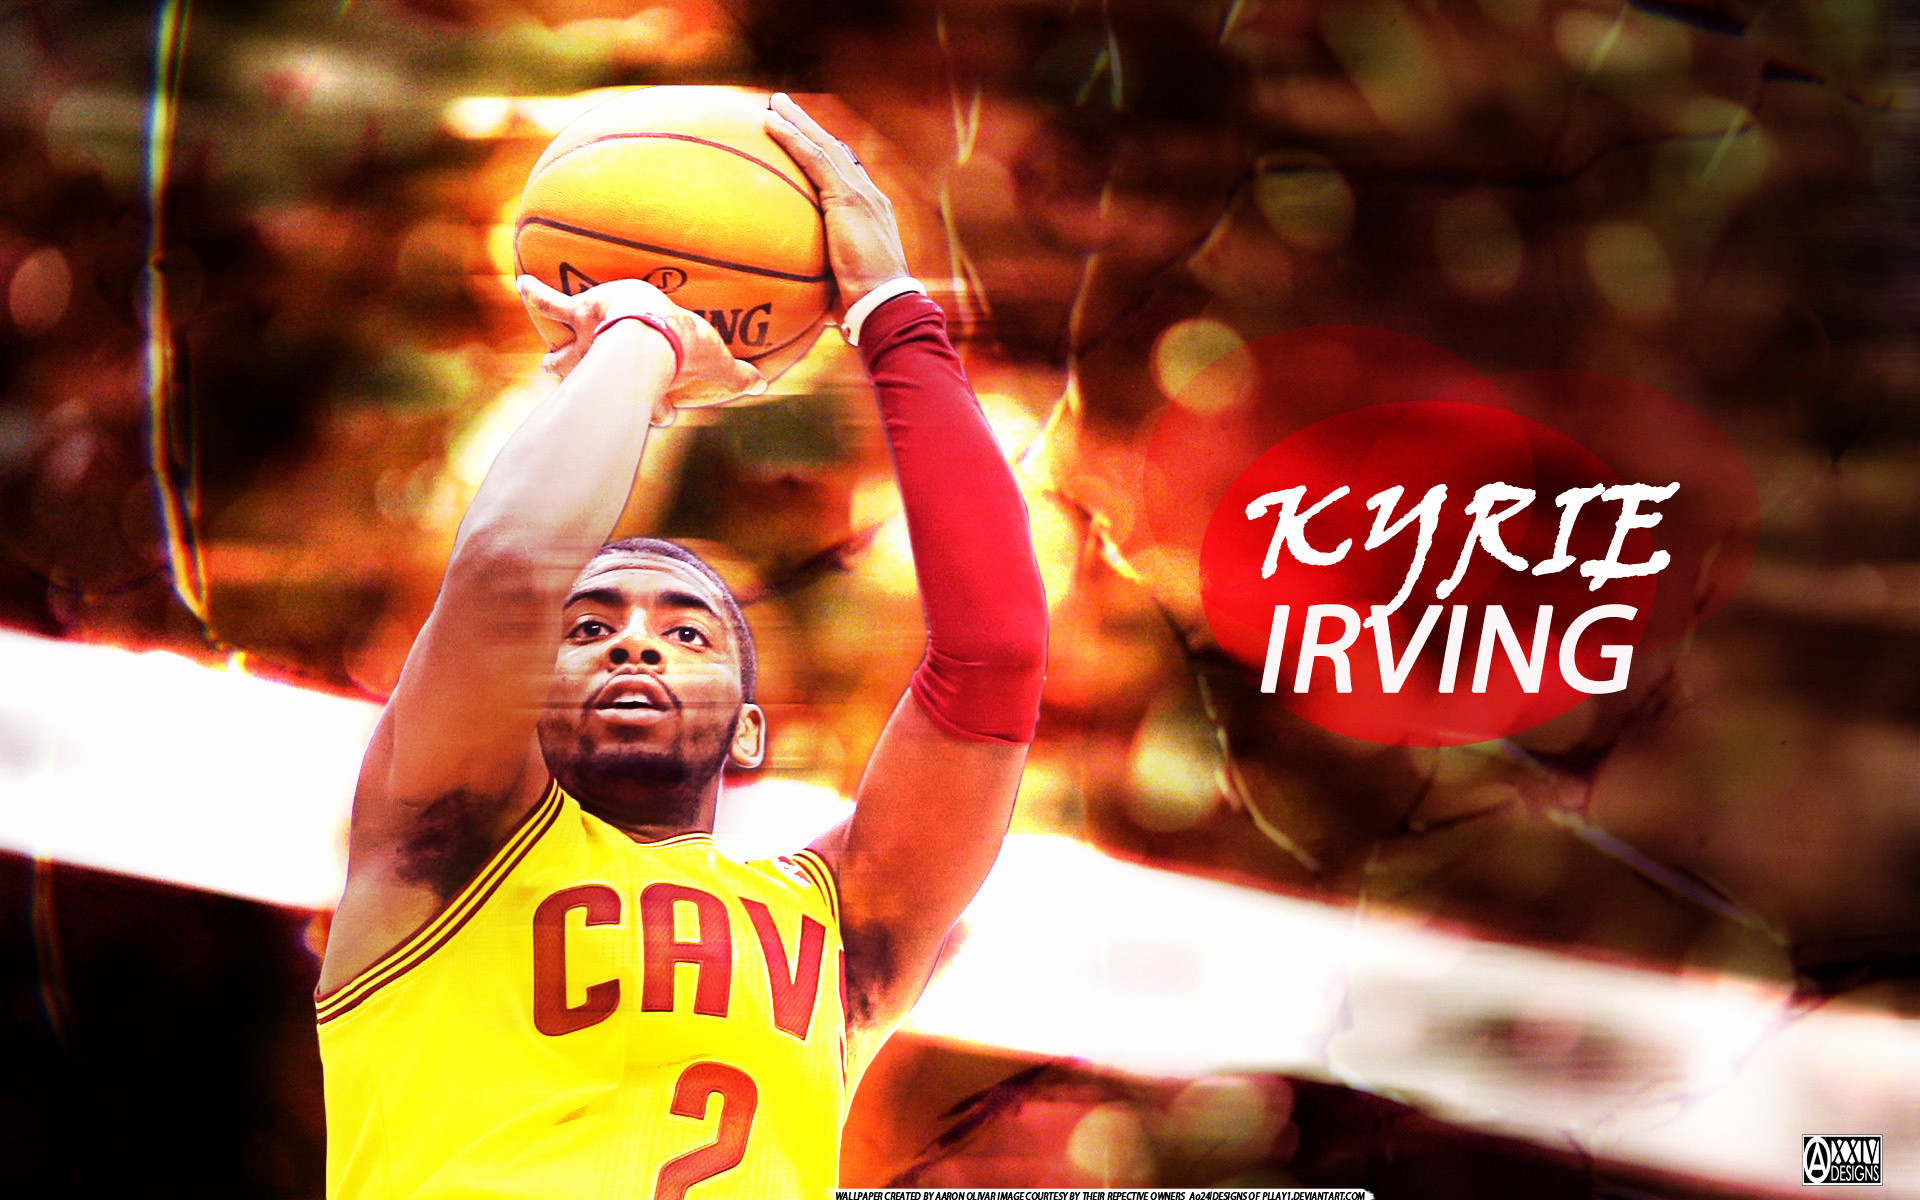 2880x1800 Free Kyrie Irving Android Backgrounds Download | Page 3 of 3 | wallpaper .wiki